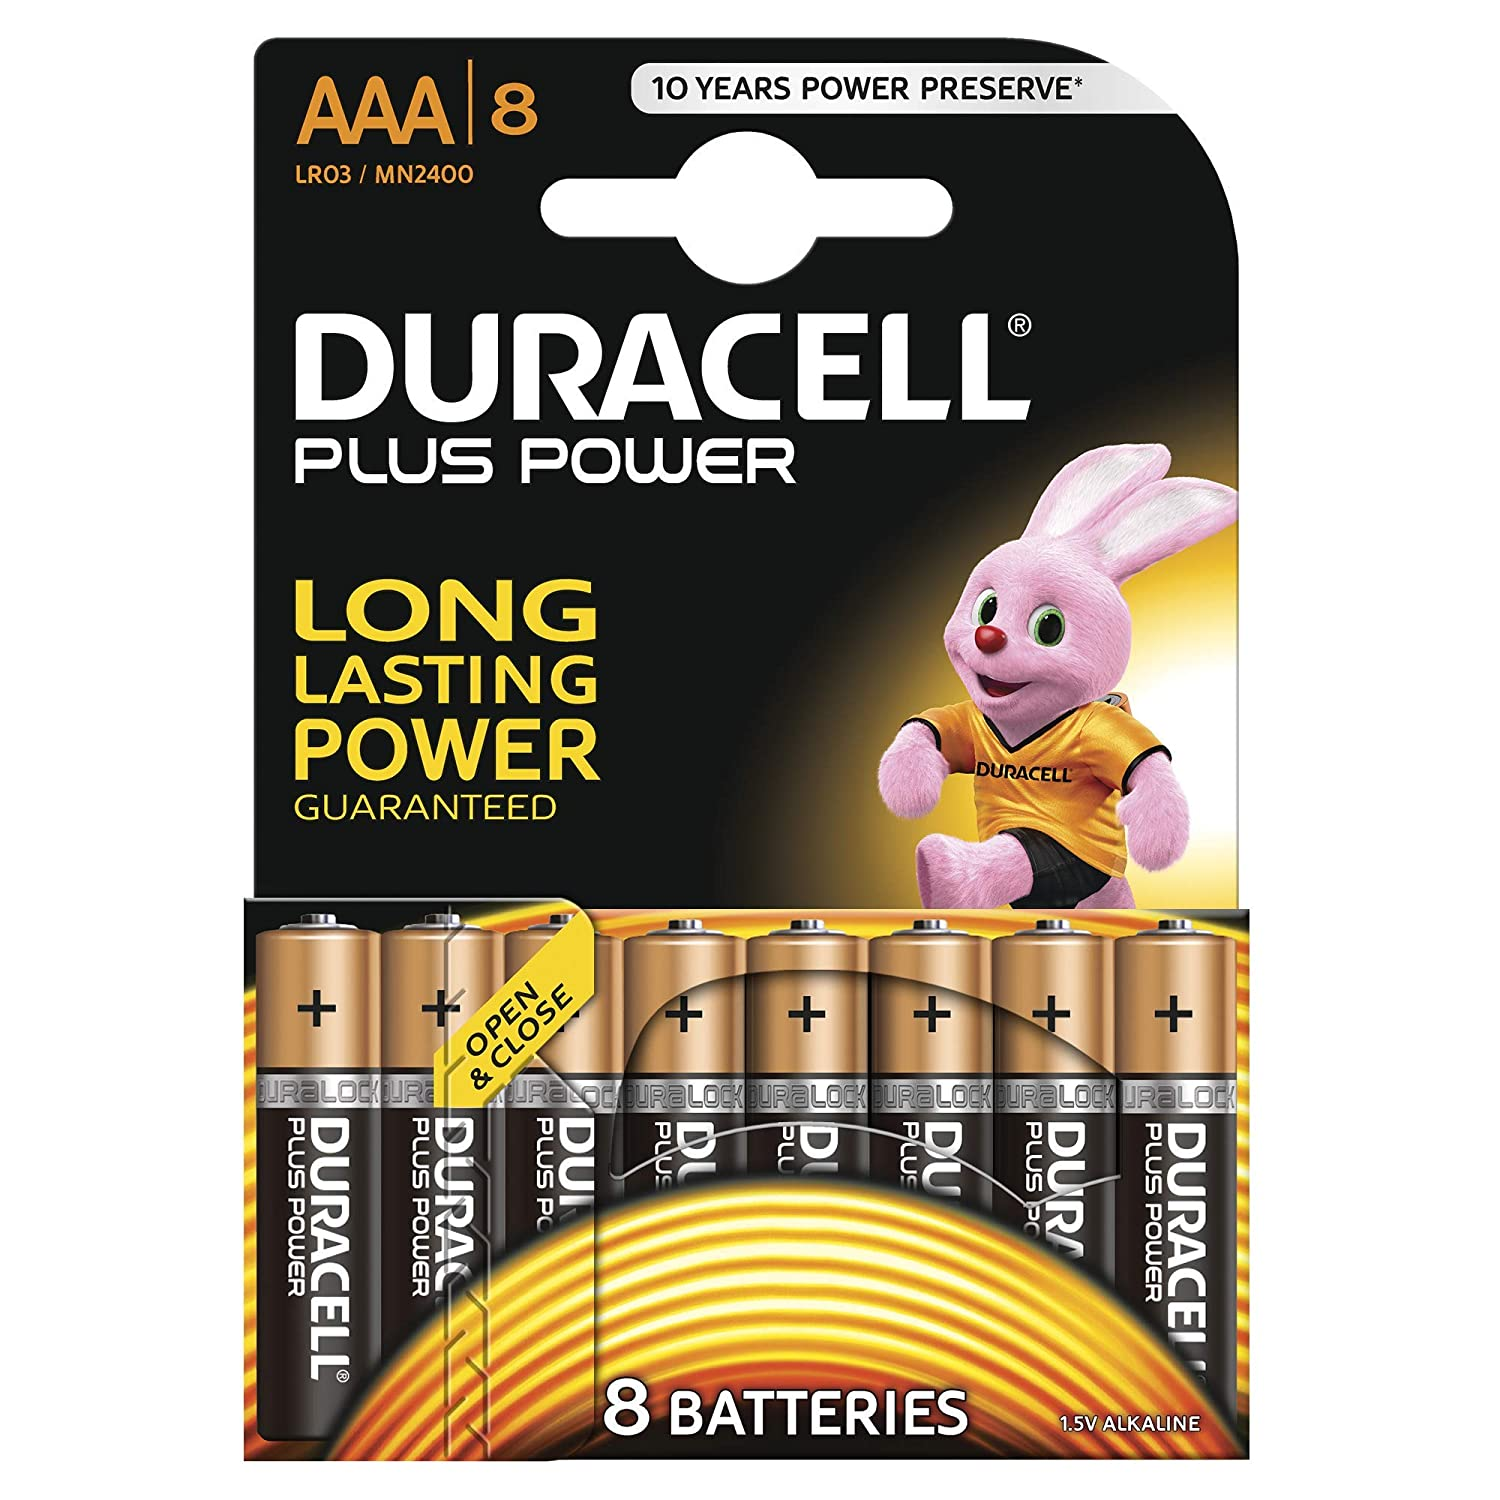 Duracell Plus Power Type Aaa Alkaline Batteries Pack Powering Led From Single Aa Cell Electronics